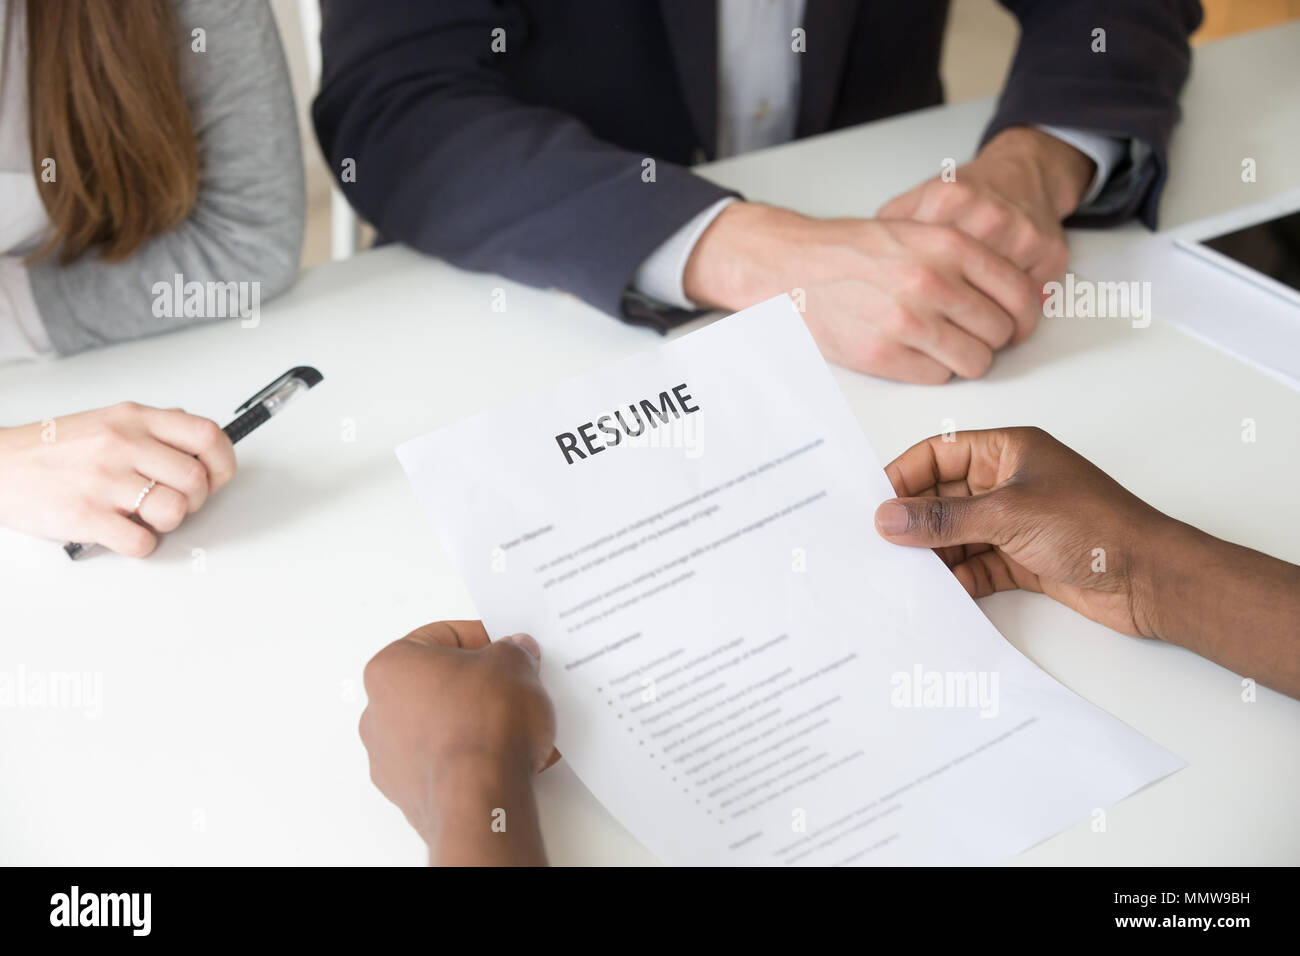 African American Applicant Holding Resume At Job Interview Clos